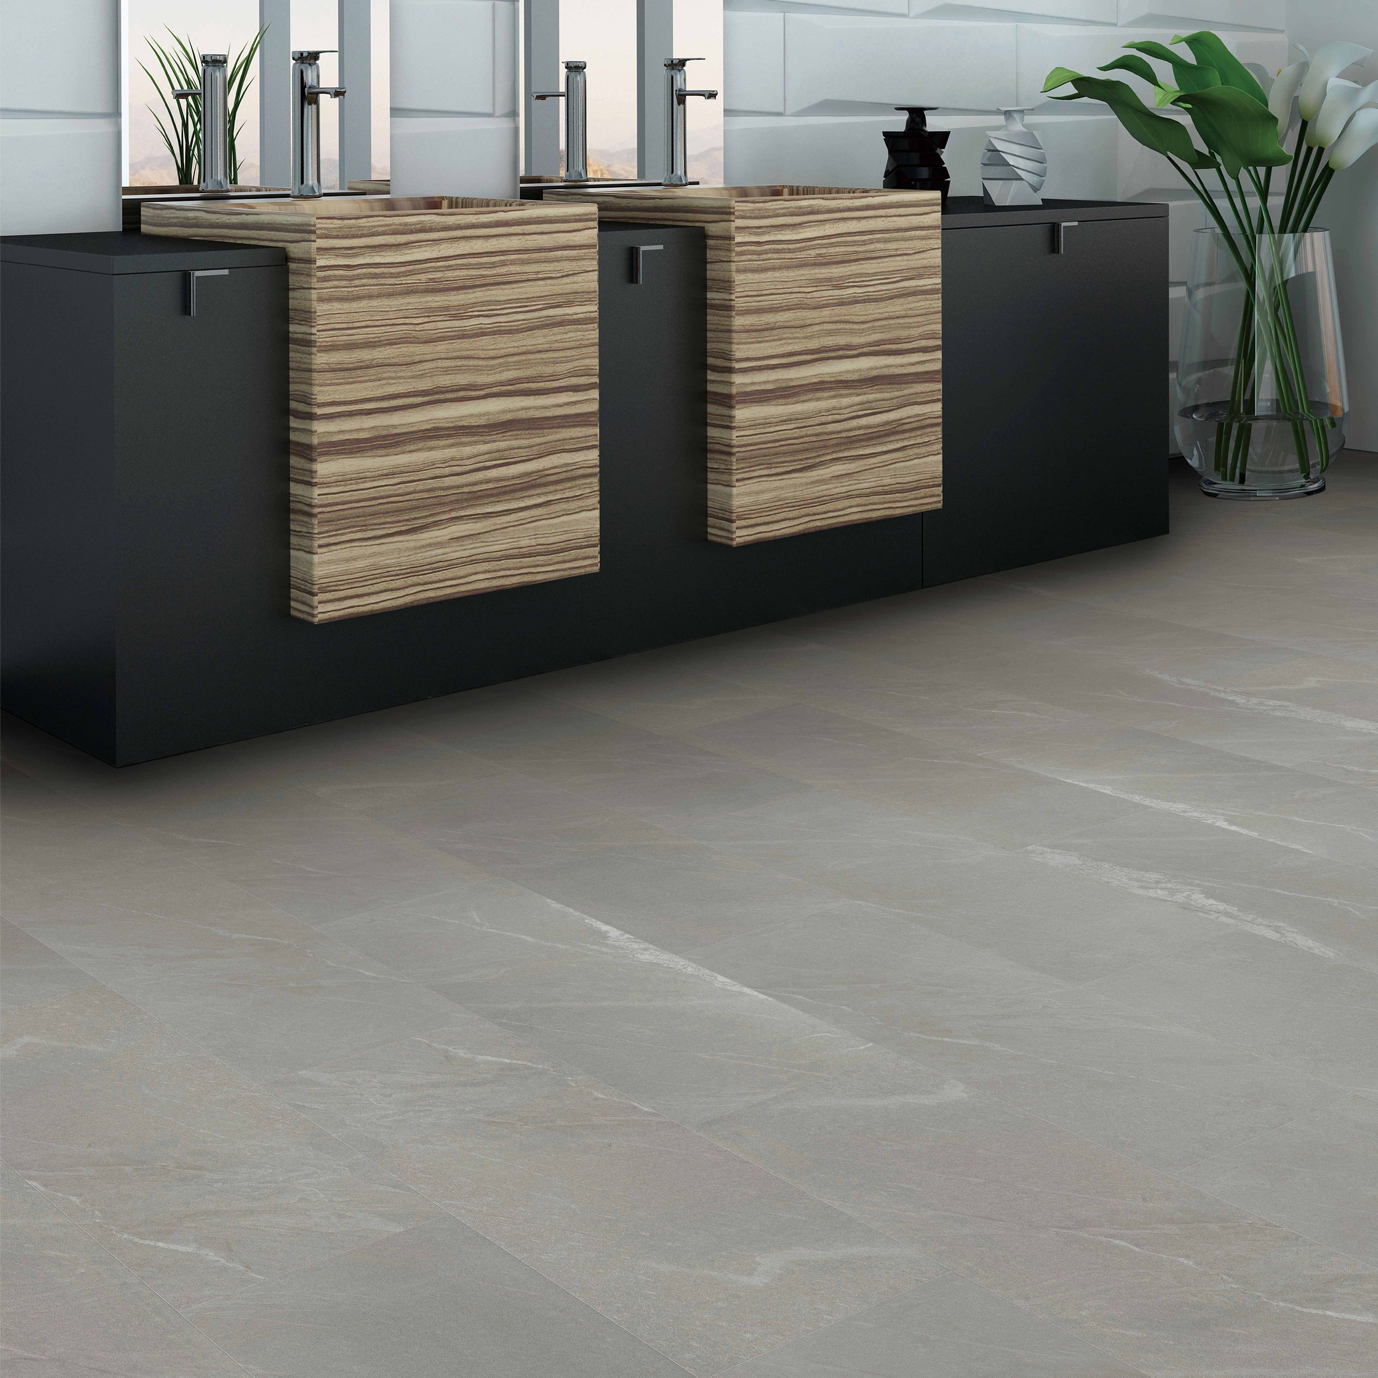 Next Floor - Expanse Tile - 536 301.jpg